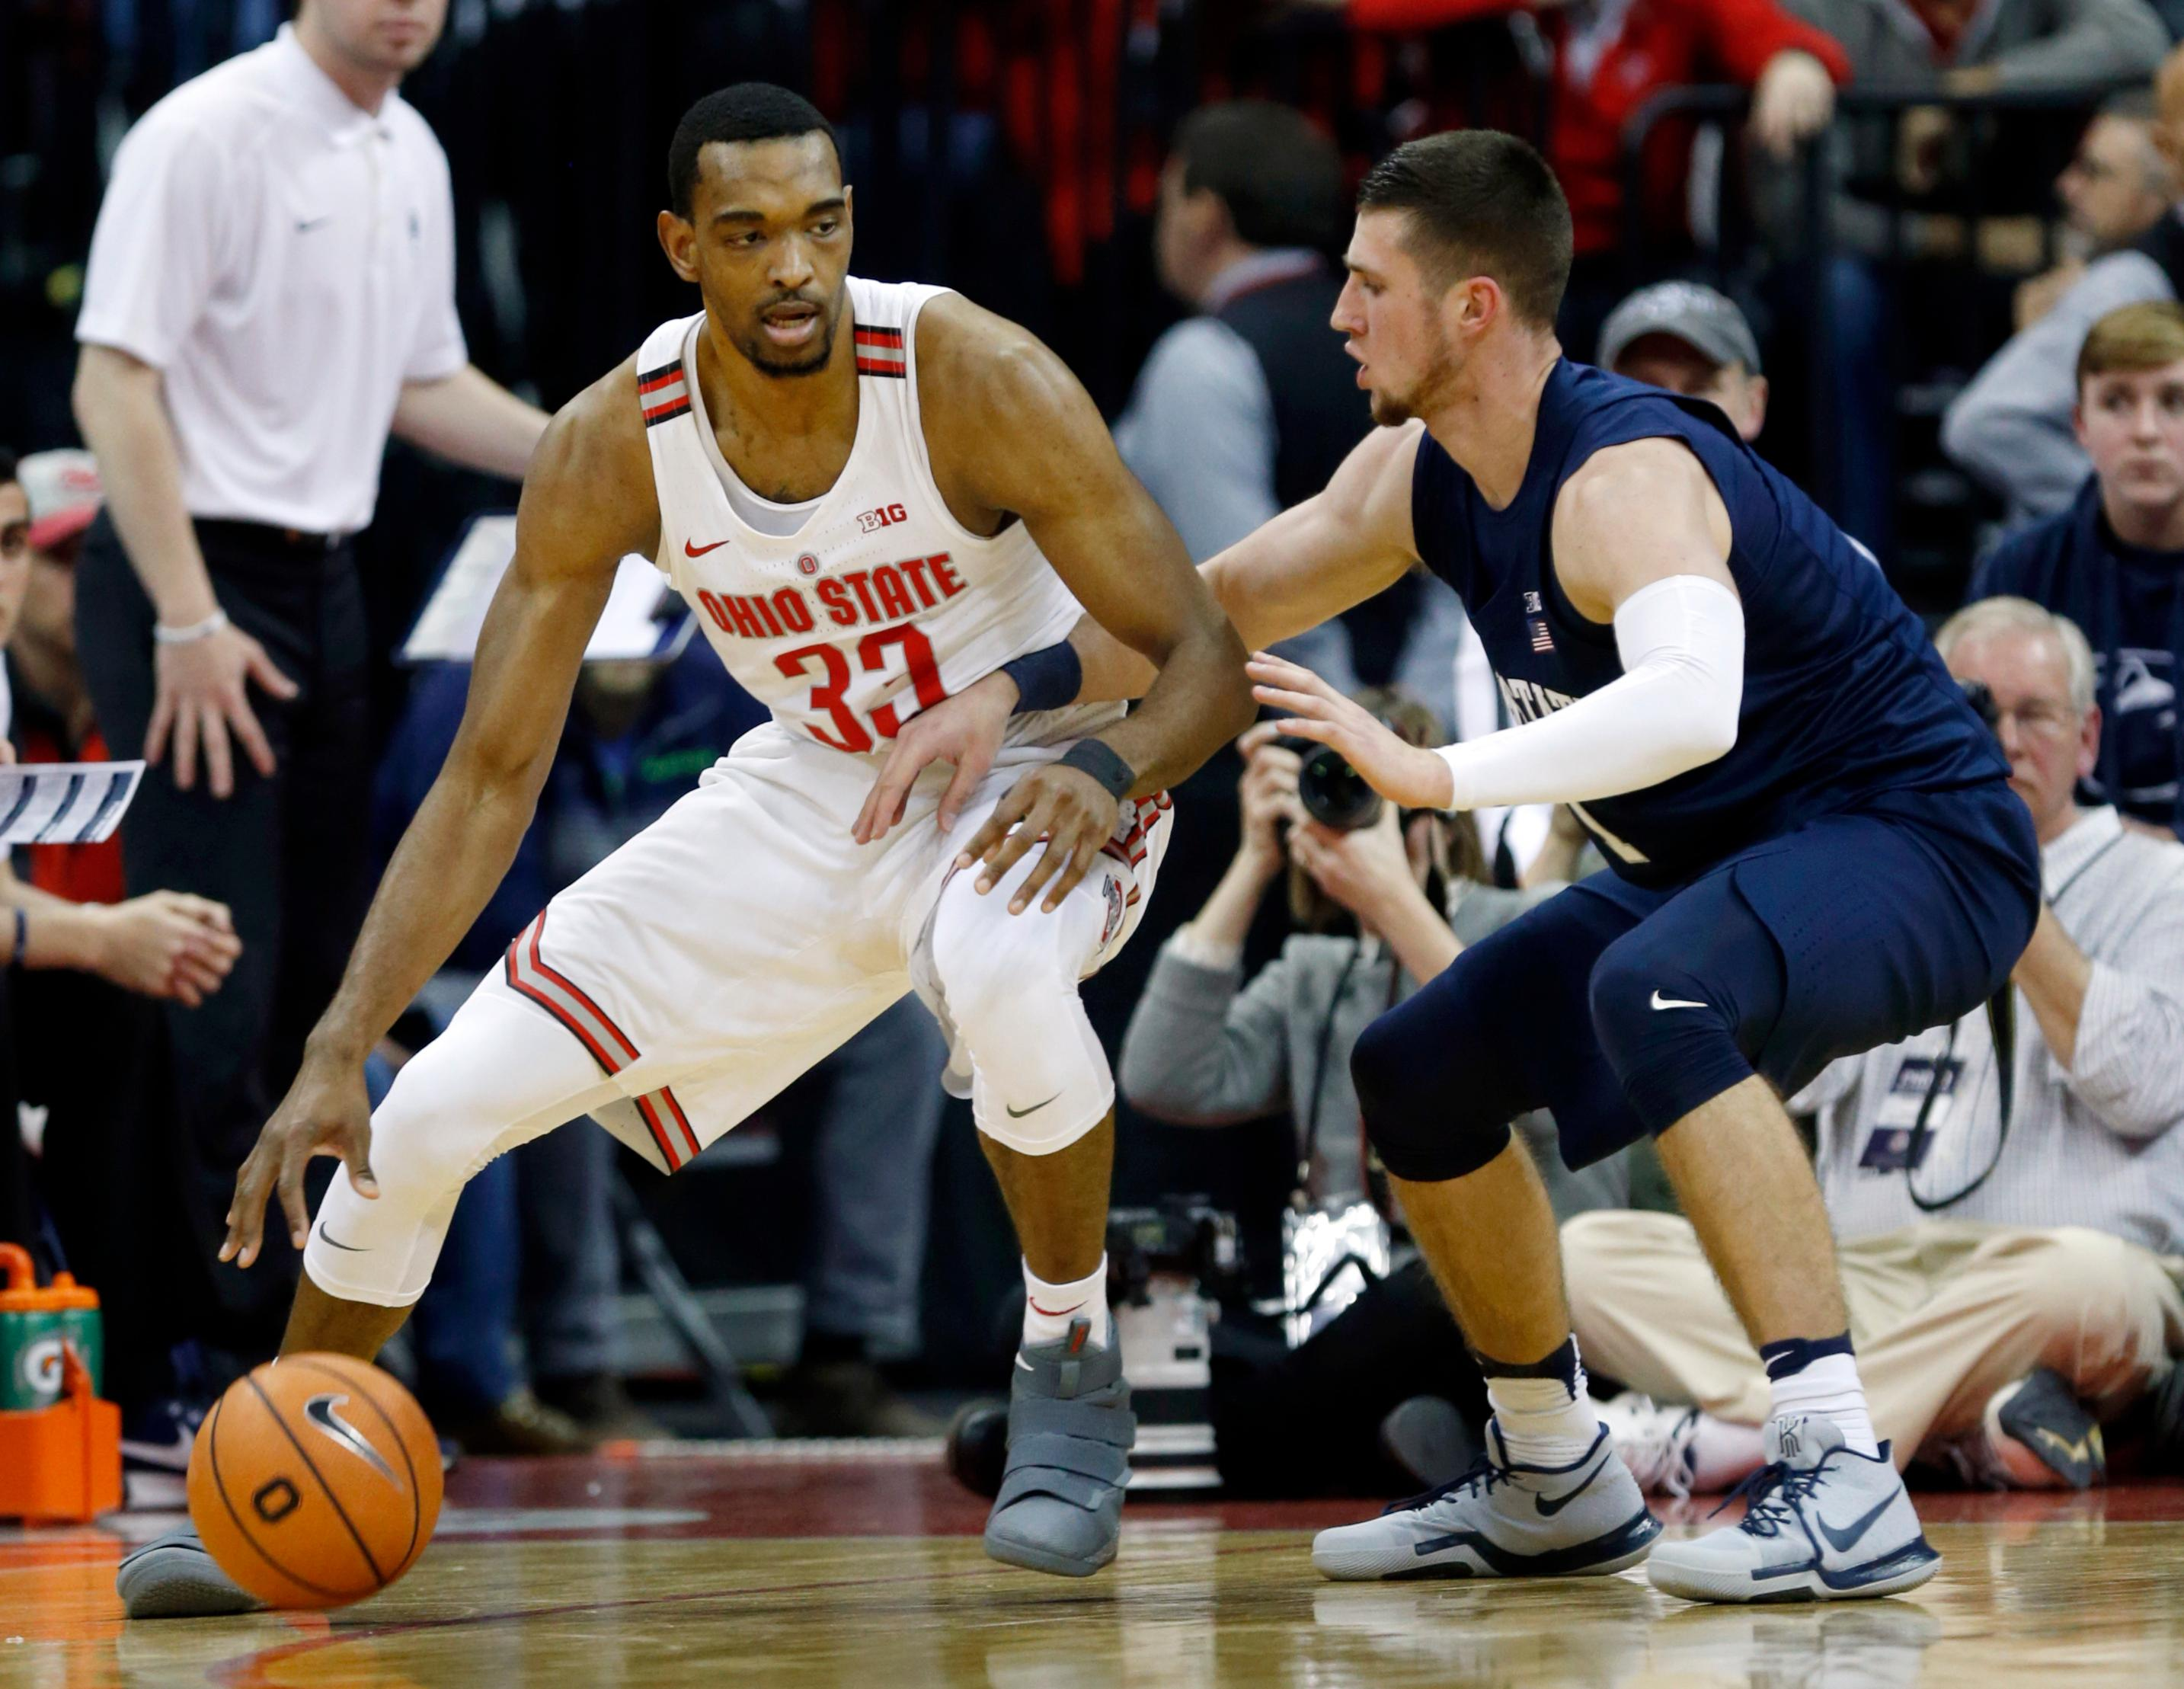 FILE - In this Jan. 25, 2018, file photo, Ohio State forward Keita Bates-Diop, left, drives against Penn State forward Deivis Zemgulis during an NCAA college basketball game in Columbus, Ohio. Chris Holtmann's first season coaching at Ohio State was a hit after the Buckeyes exceeded preseason expectations to finish 15-3 in the league to get the second seed in the Big Ten conference tournament. Bates-Diop, who averages 19.2 points and 8.9 rebounds per game, won league player of the year honors. (AP Photo/Paul Vernon, File)